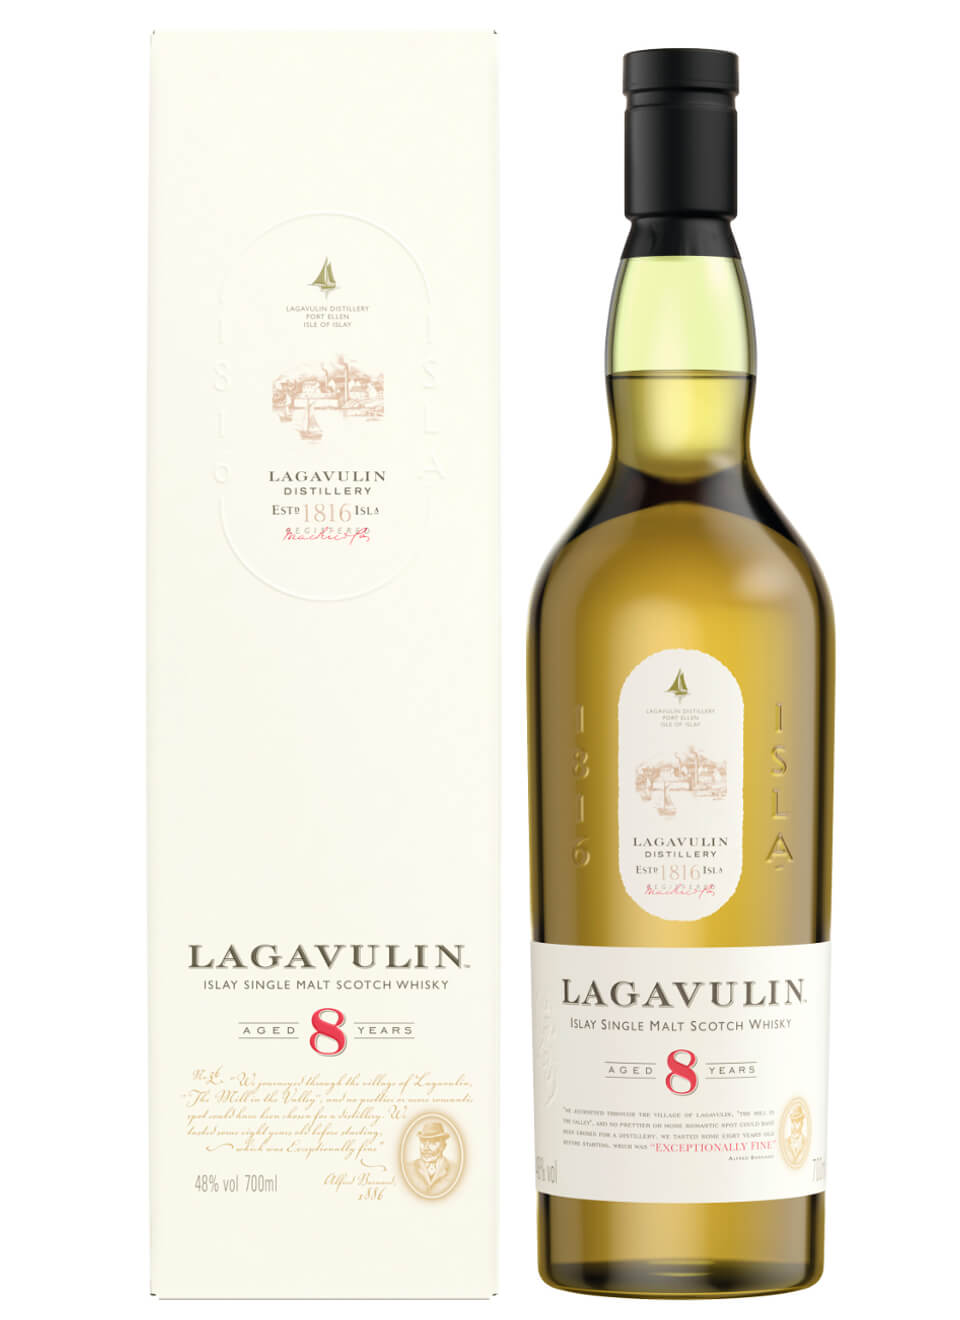 Lagavulin 8 Years Limited Edition Islay Single Malt Scotch Whisky 0,7 L